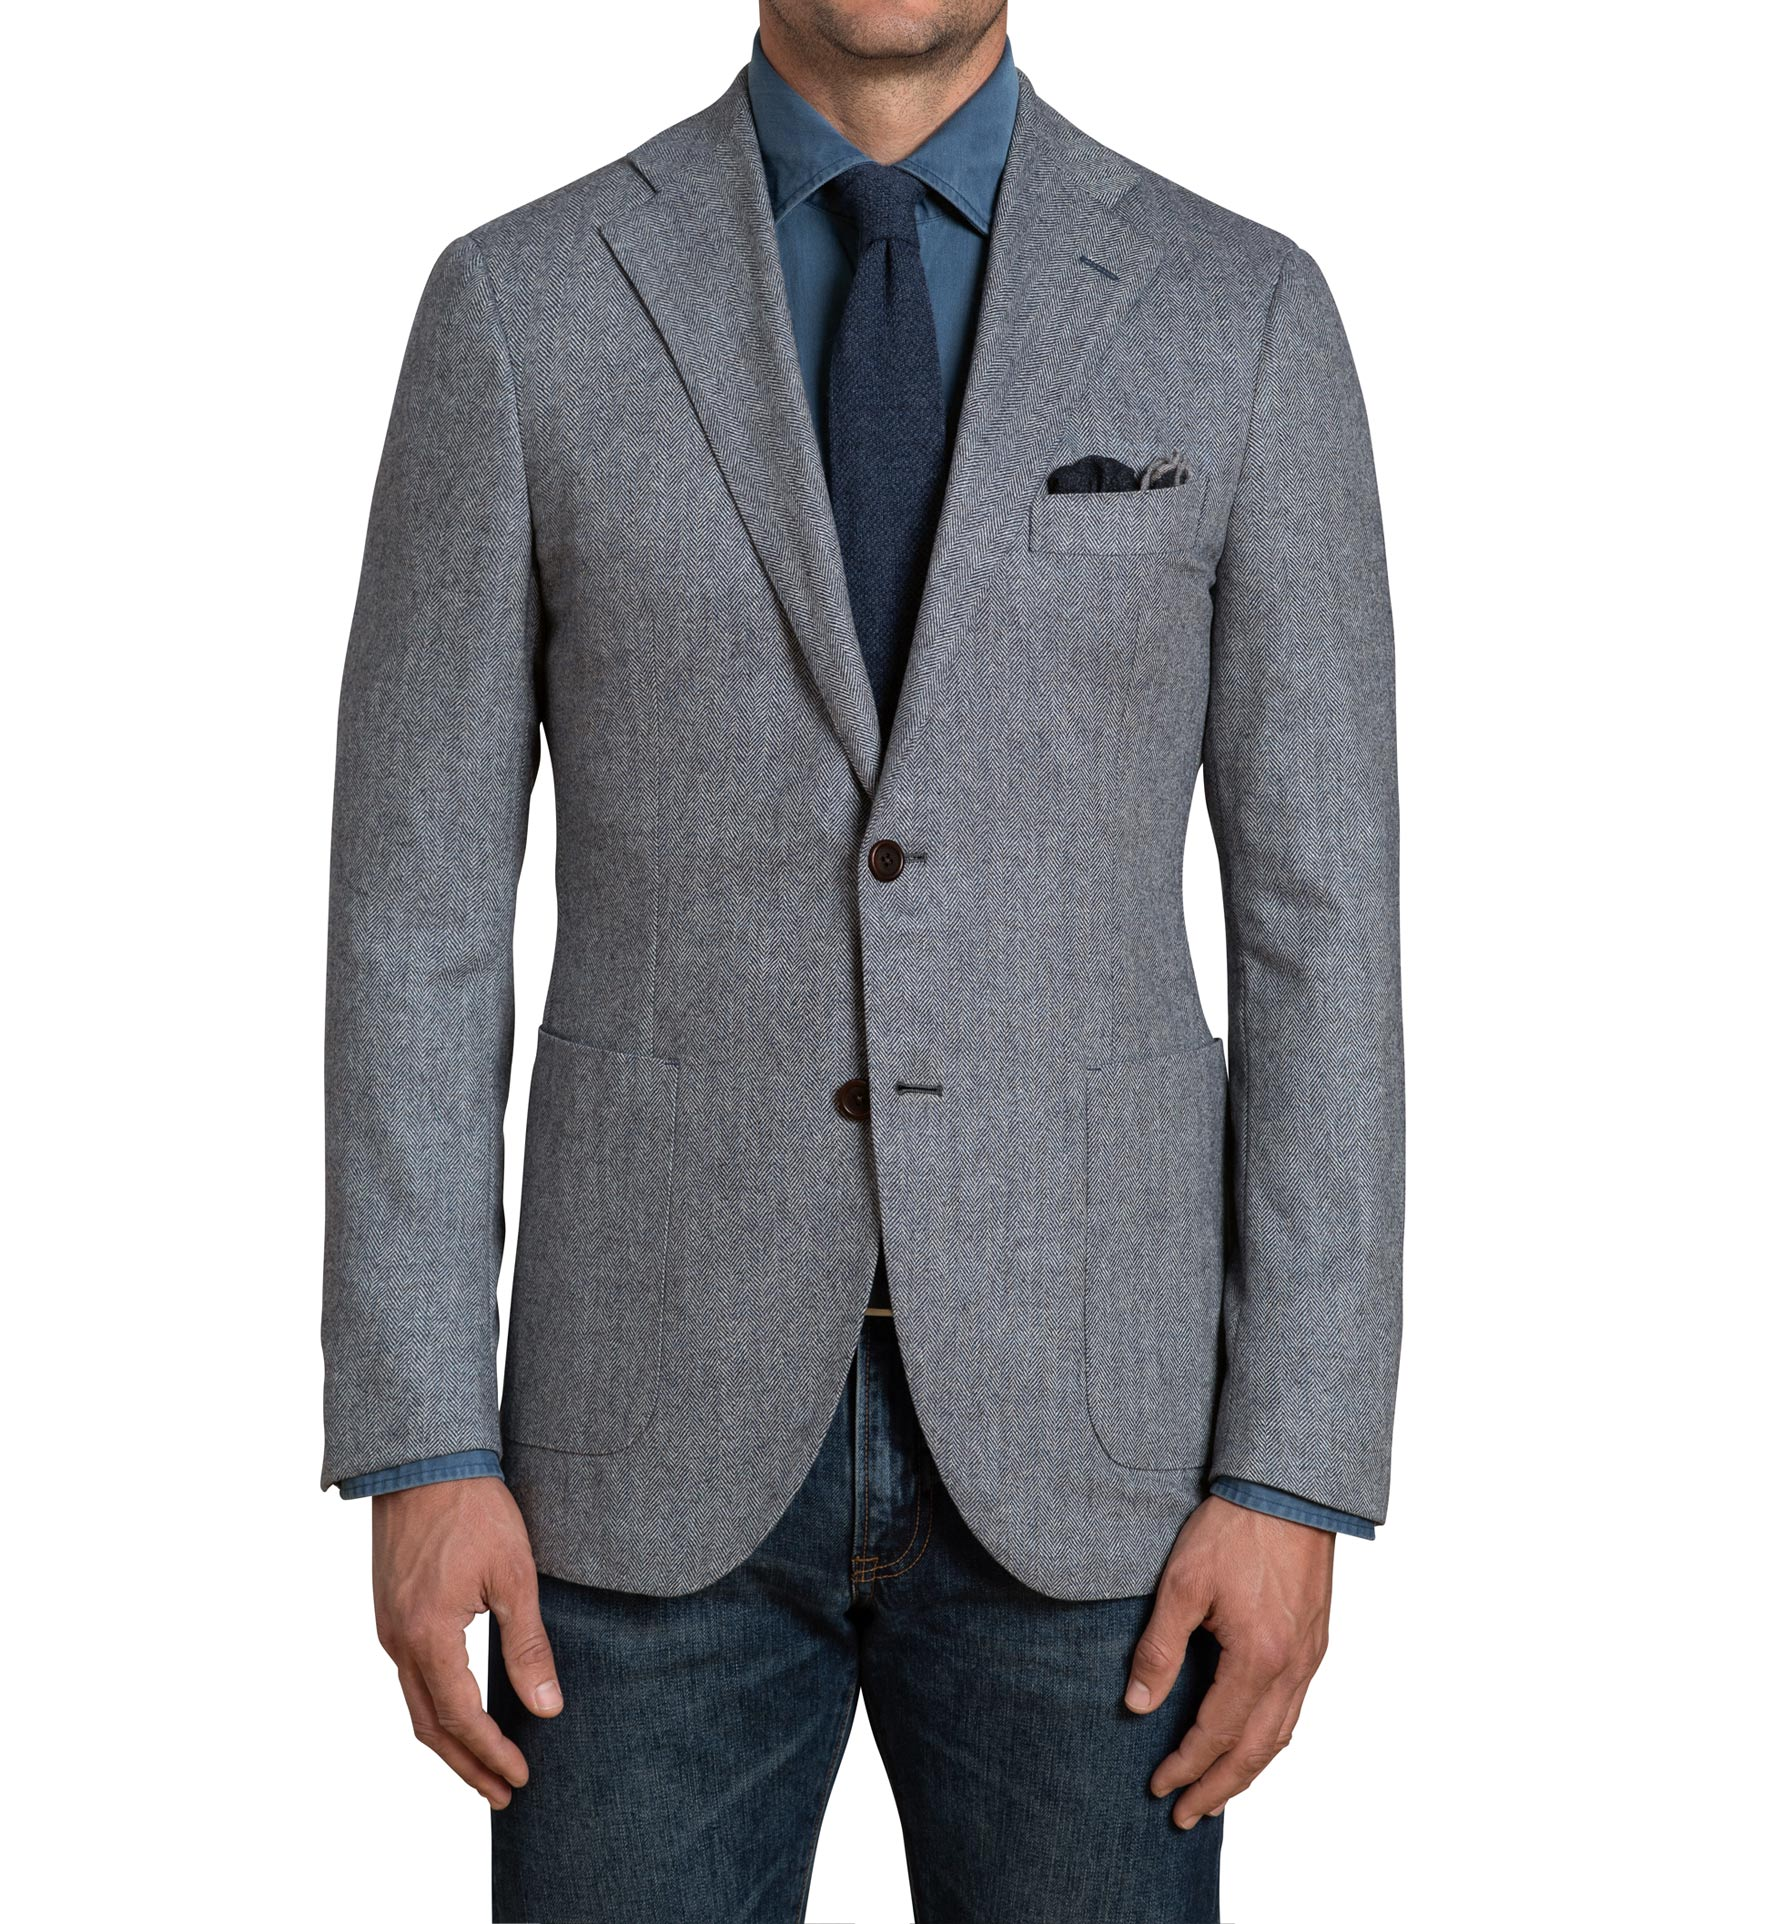 Zoom Image of Bedford Glacier Blue Herringbone Wool and Cashmere Jacket